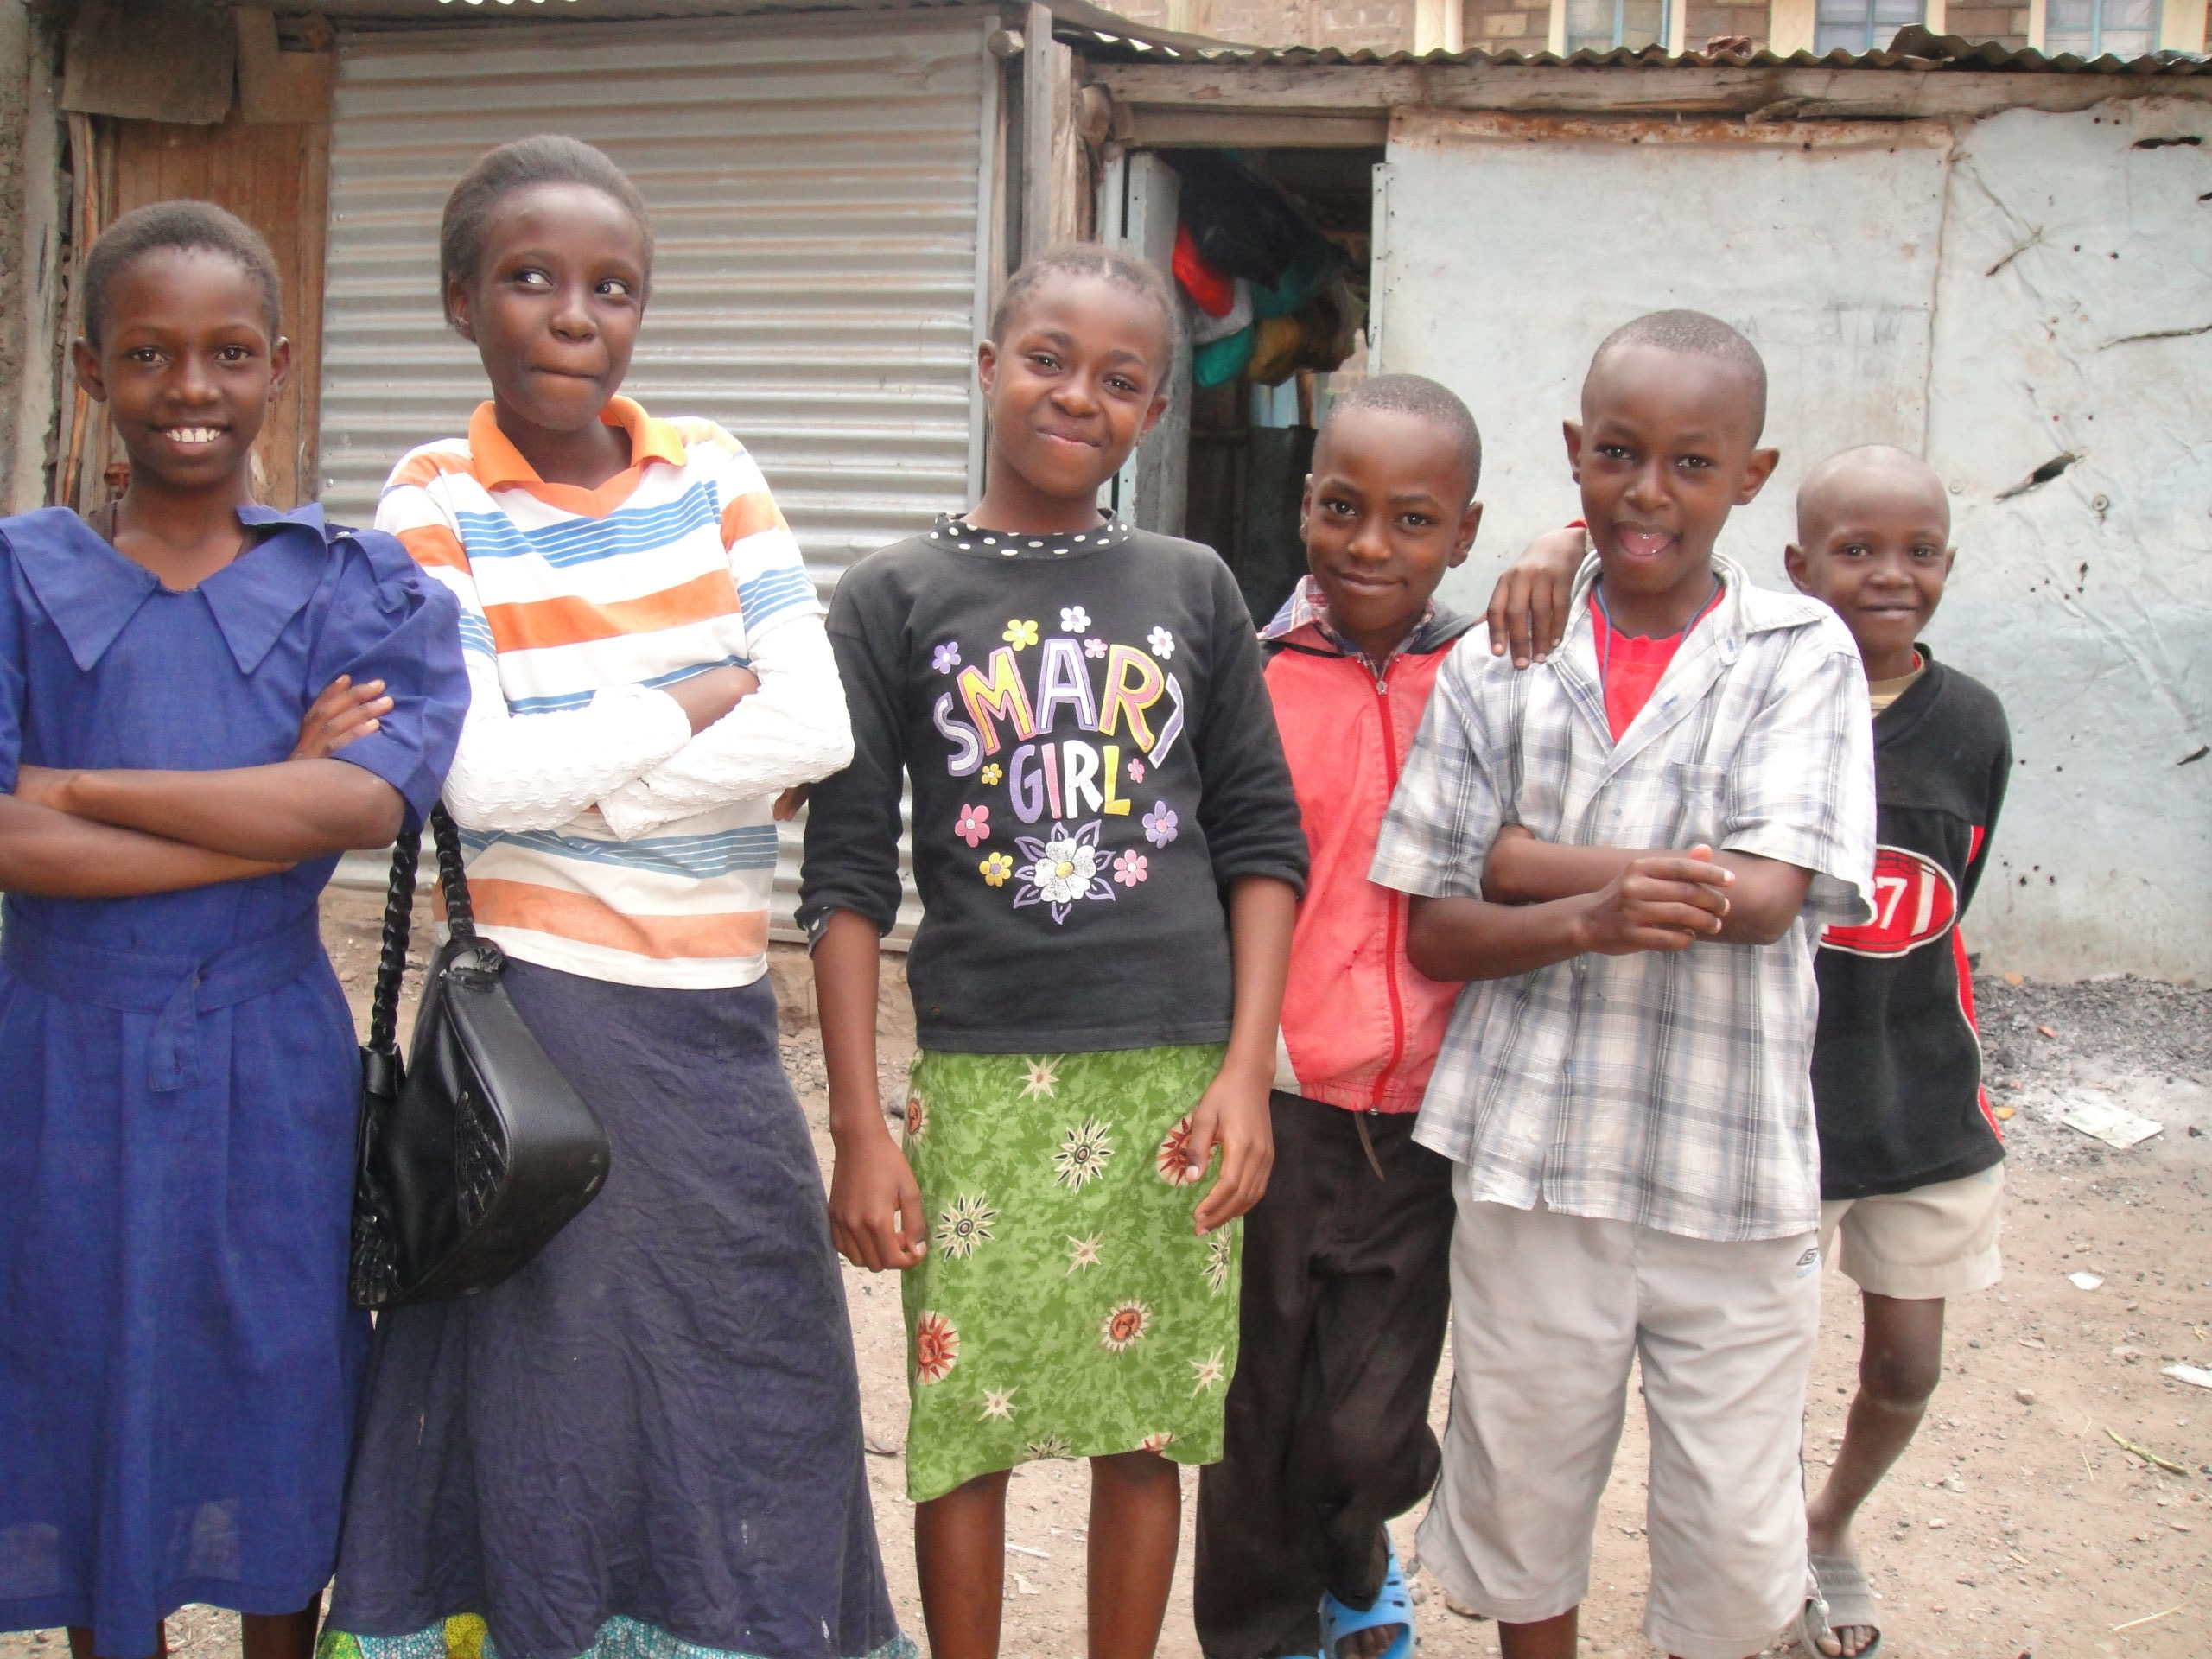 Youth in Kayole slums